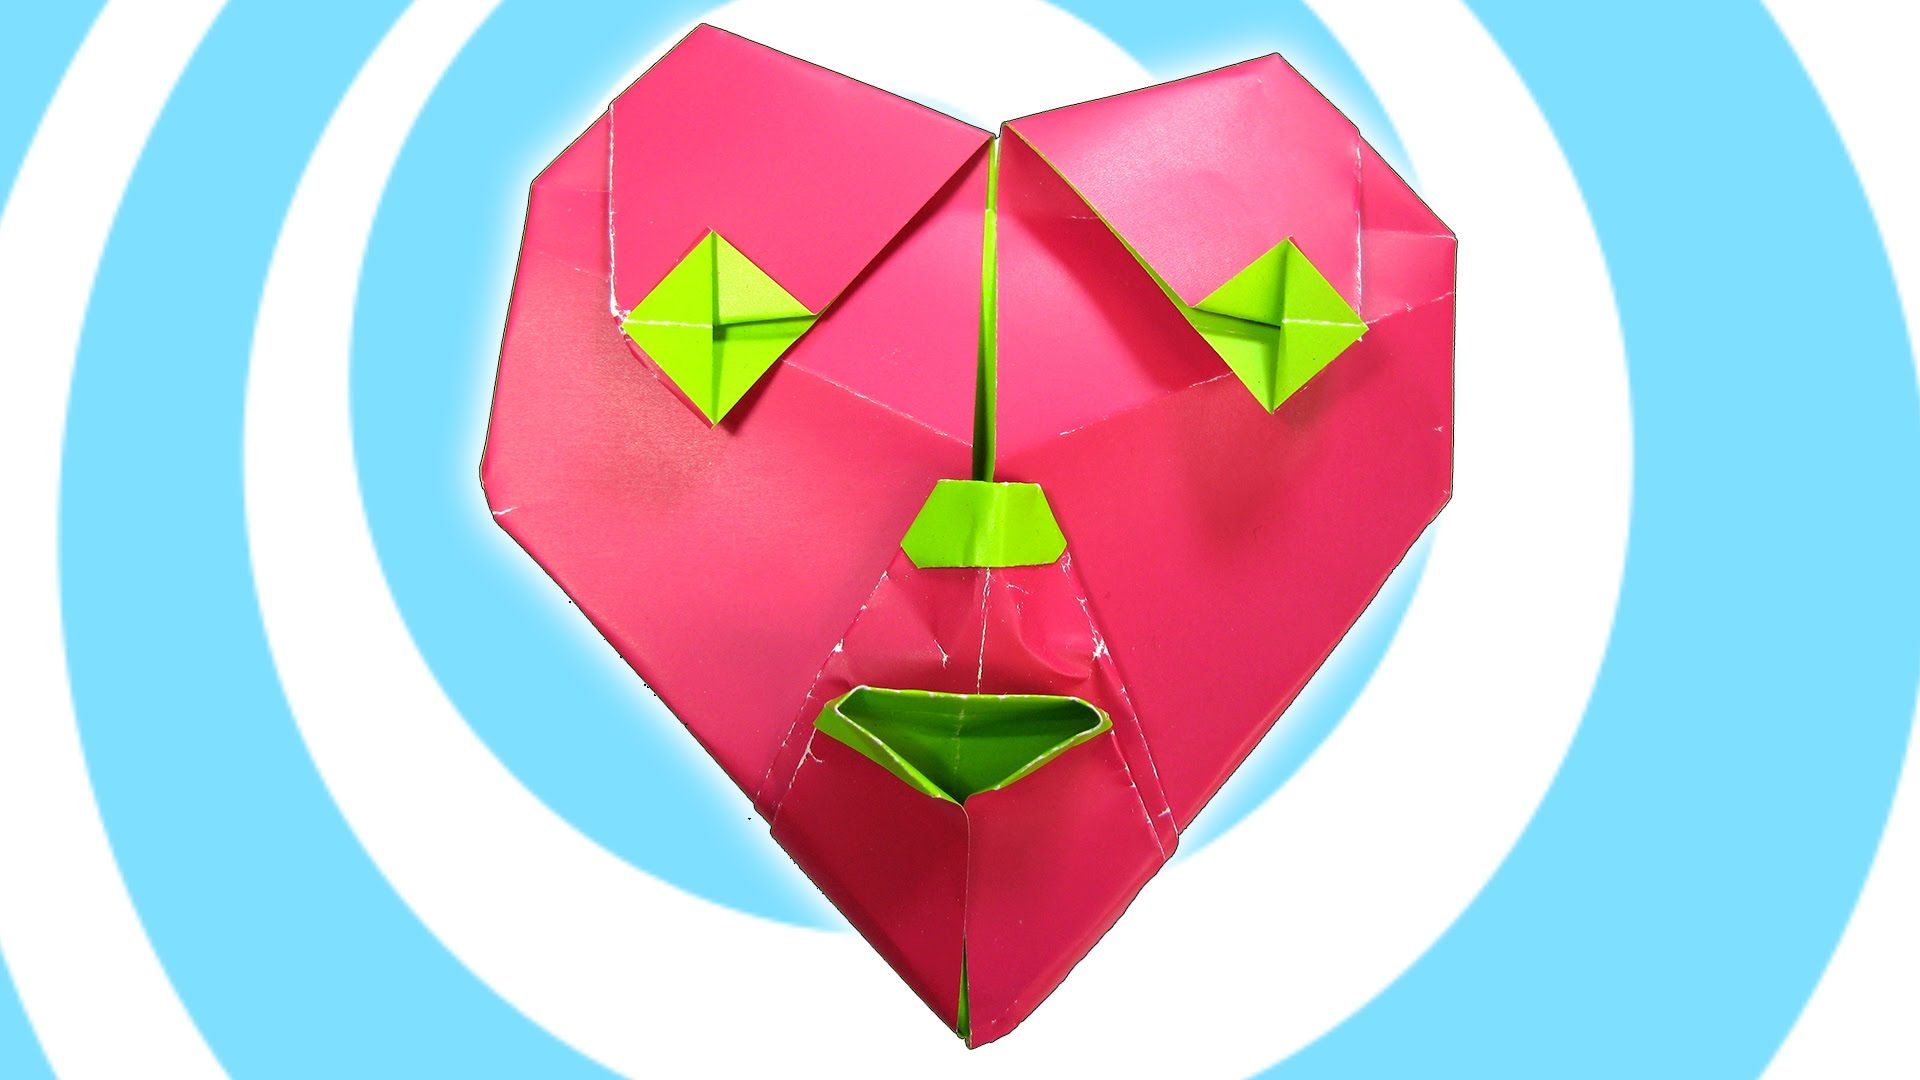 Origami heart of a clown tutorial gilad aharoni origami origami heart of a clown tutorial gilad aharoni origami jeuxipadfo Image collections